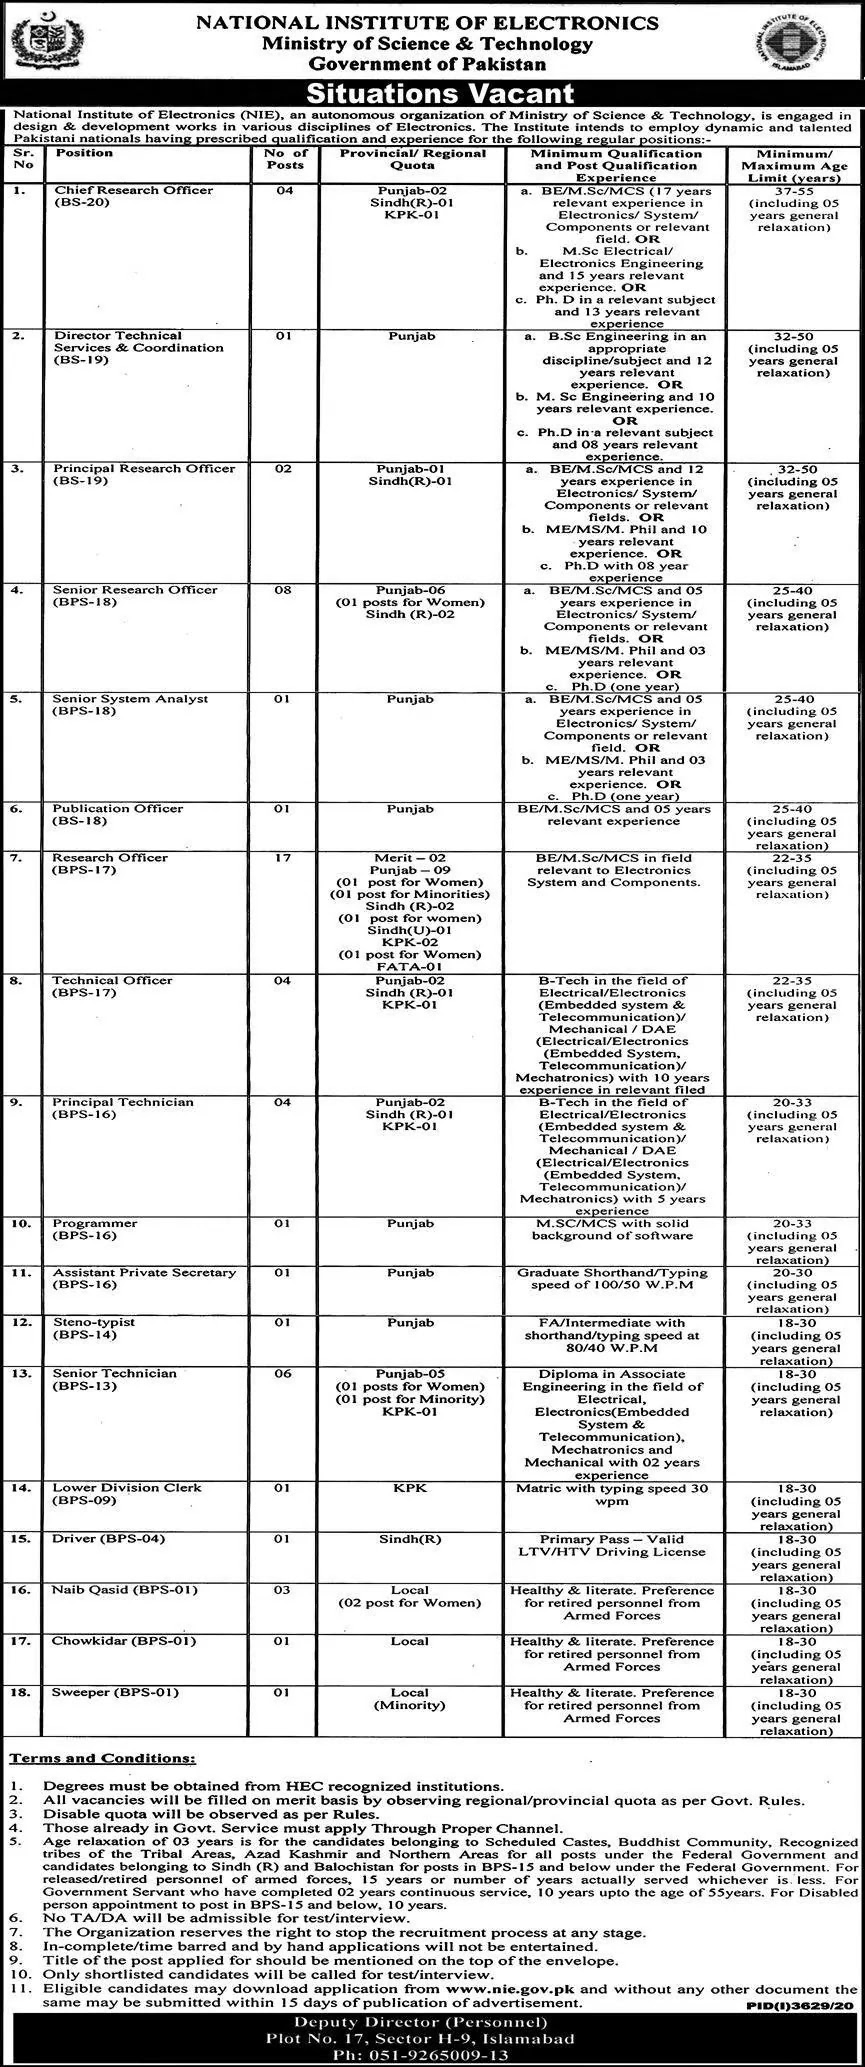 NIE Jobs 2021 - National Institute of Electronics Jobs 2021